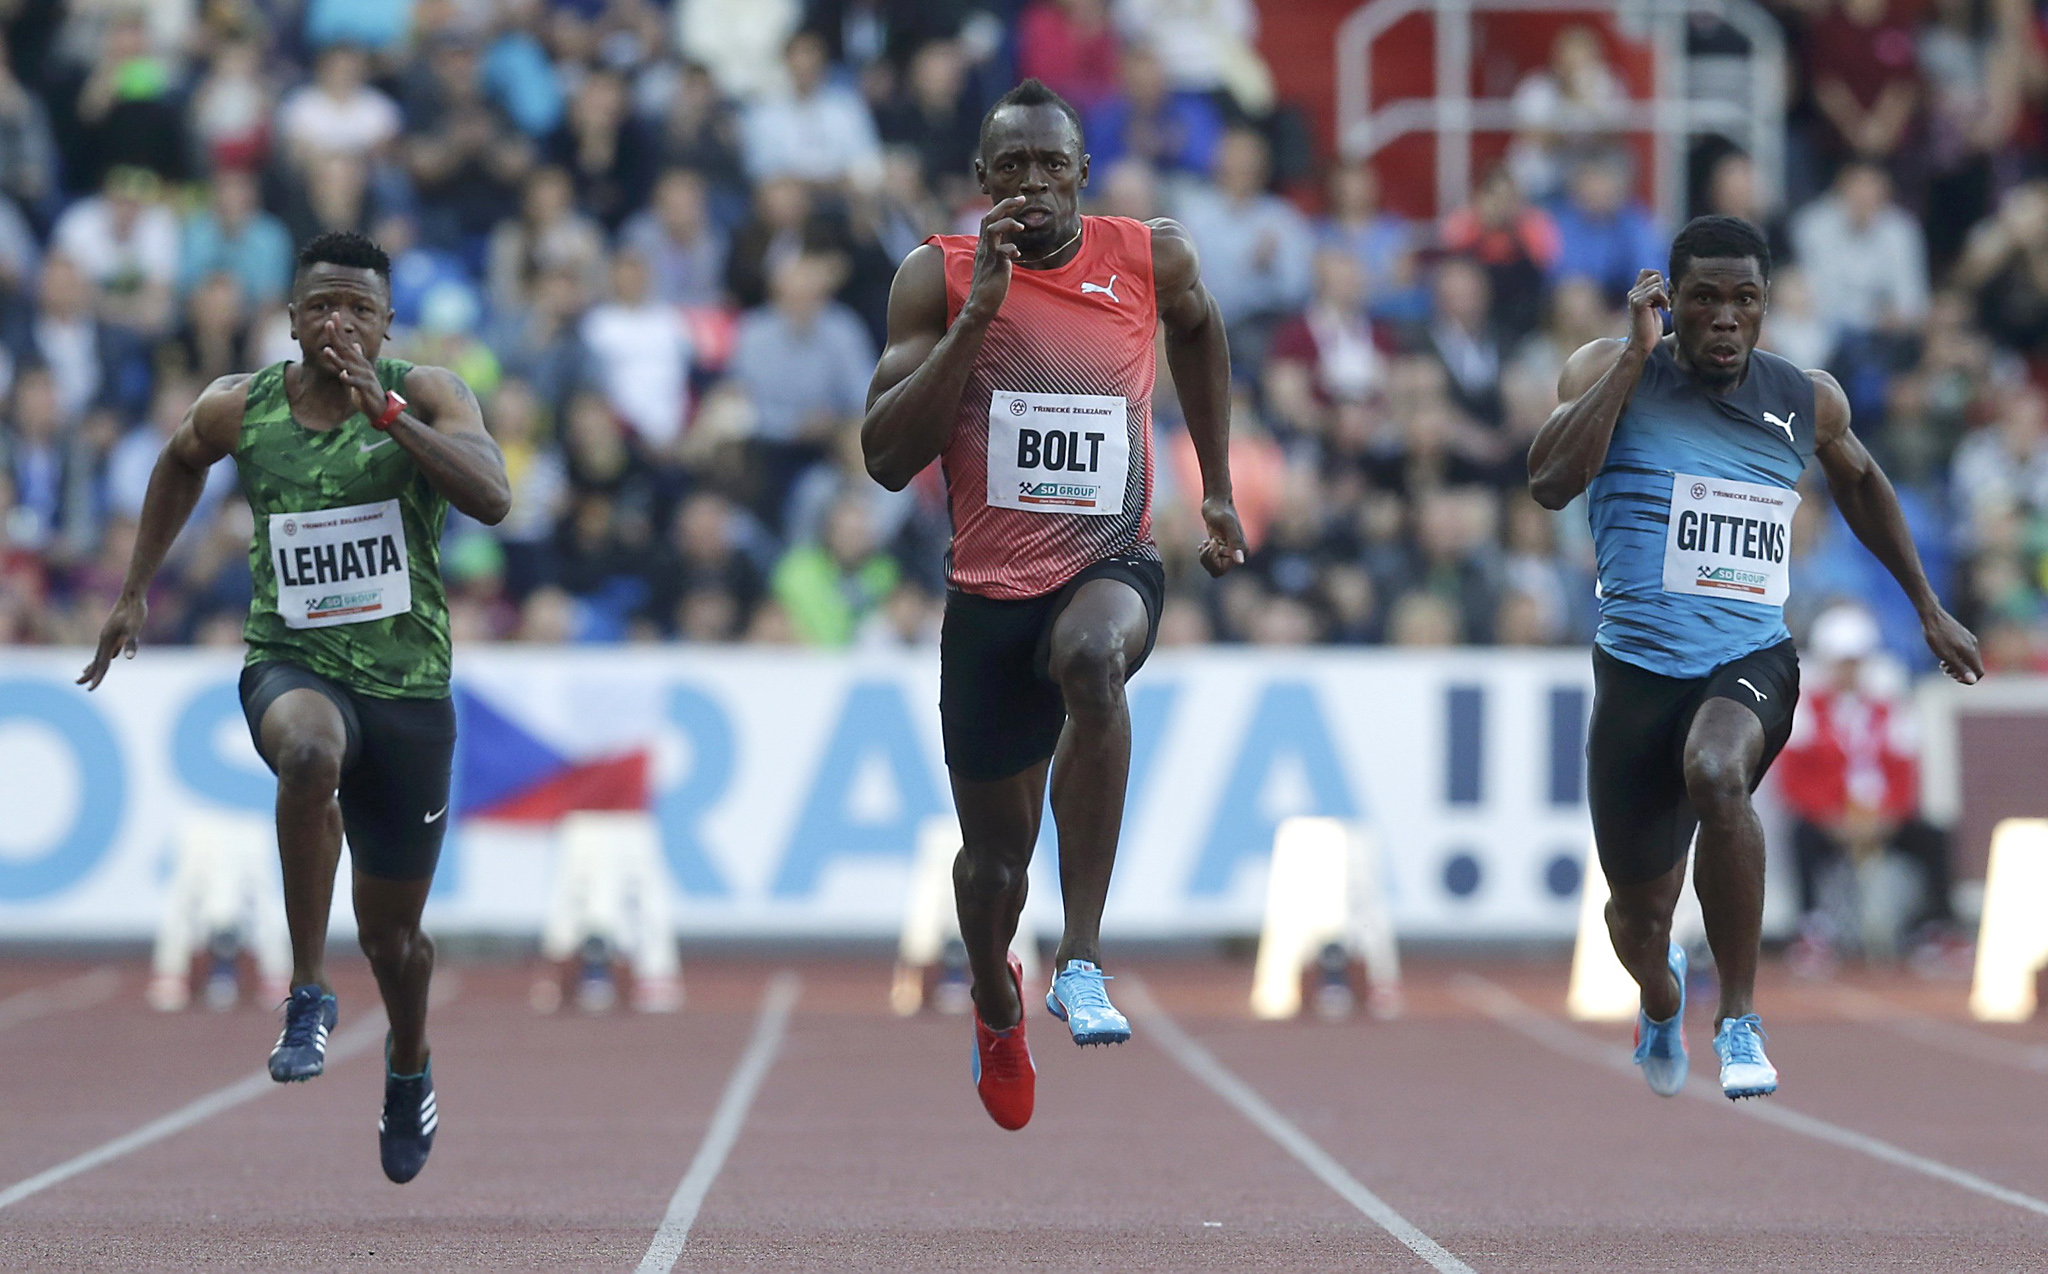 Athletics - IAAF Ostrava Golden Spike athletics meeting - Ostrava, Czech Republic - 20/05/16 Jamaica's Usain Bolt, Barbados' Ramos Gittens and Lesotho's Mosito Lehata compete in the men's 100m race. REUTERS/David W Cerny